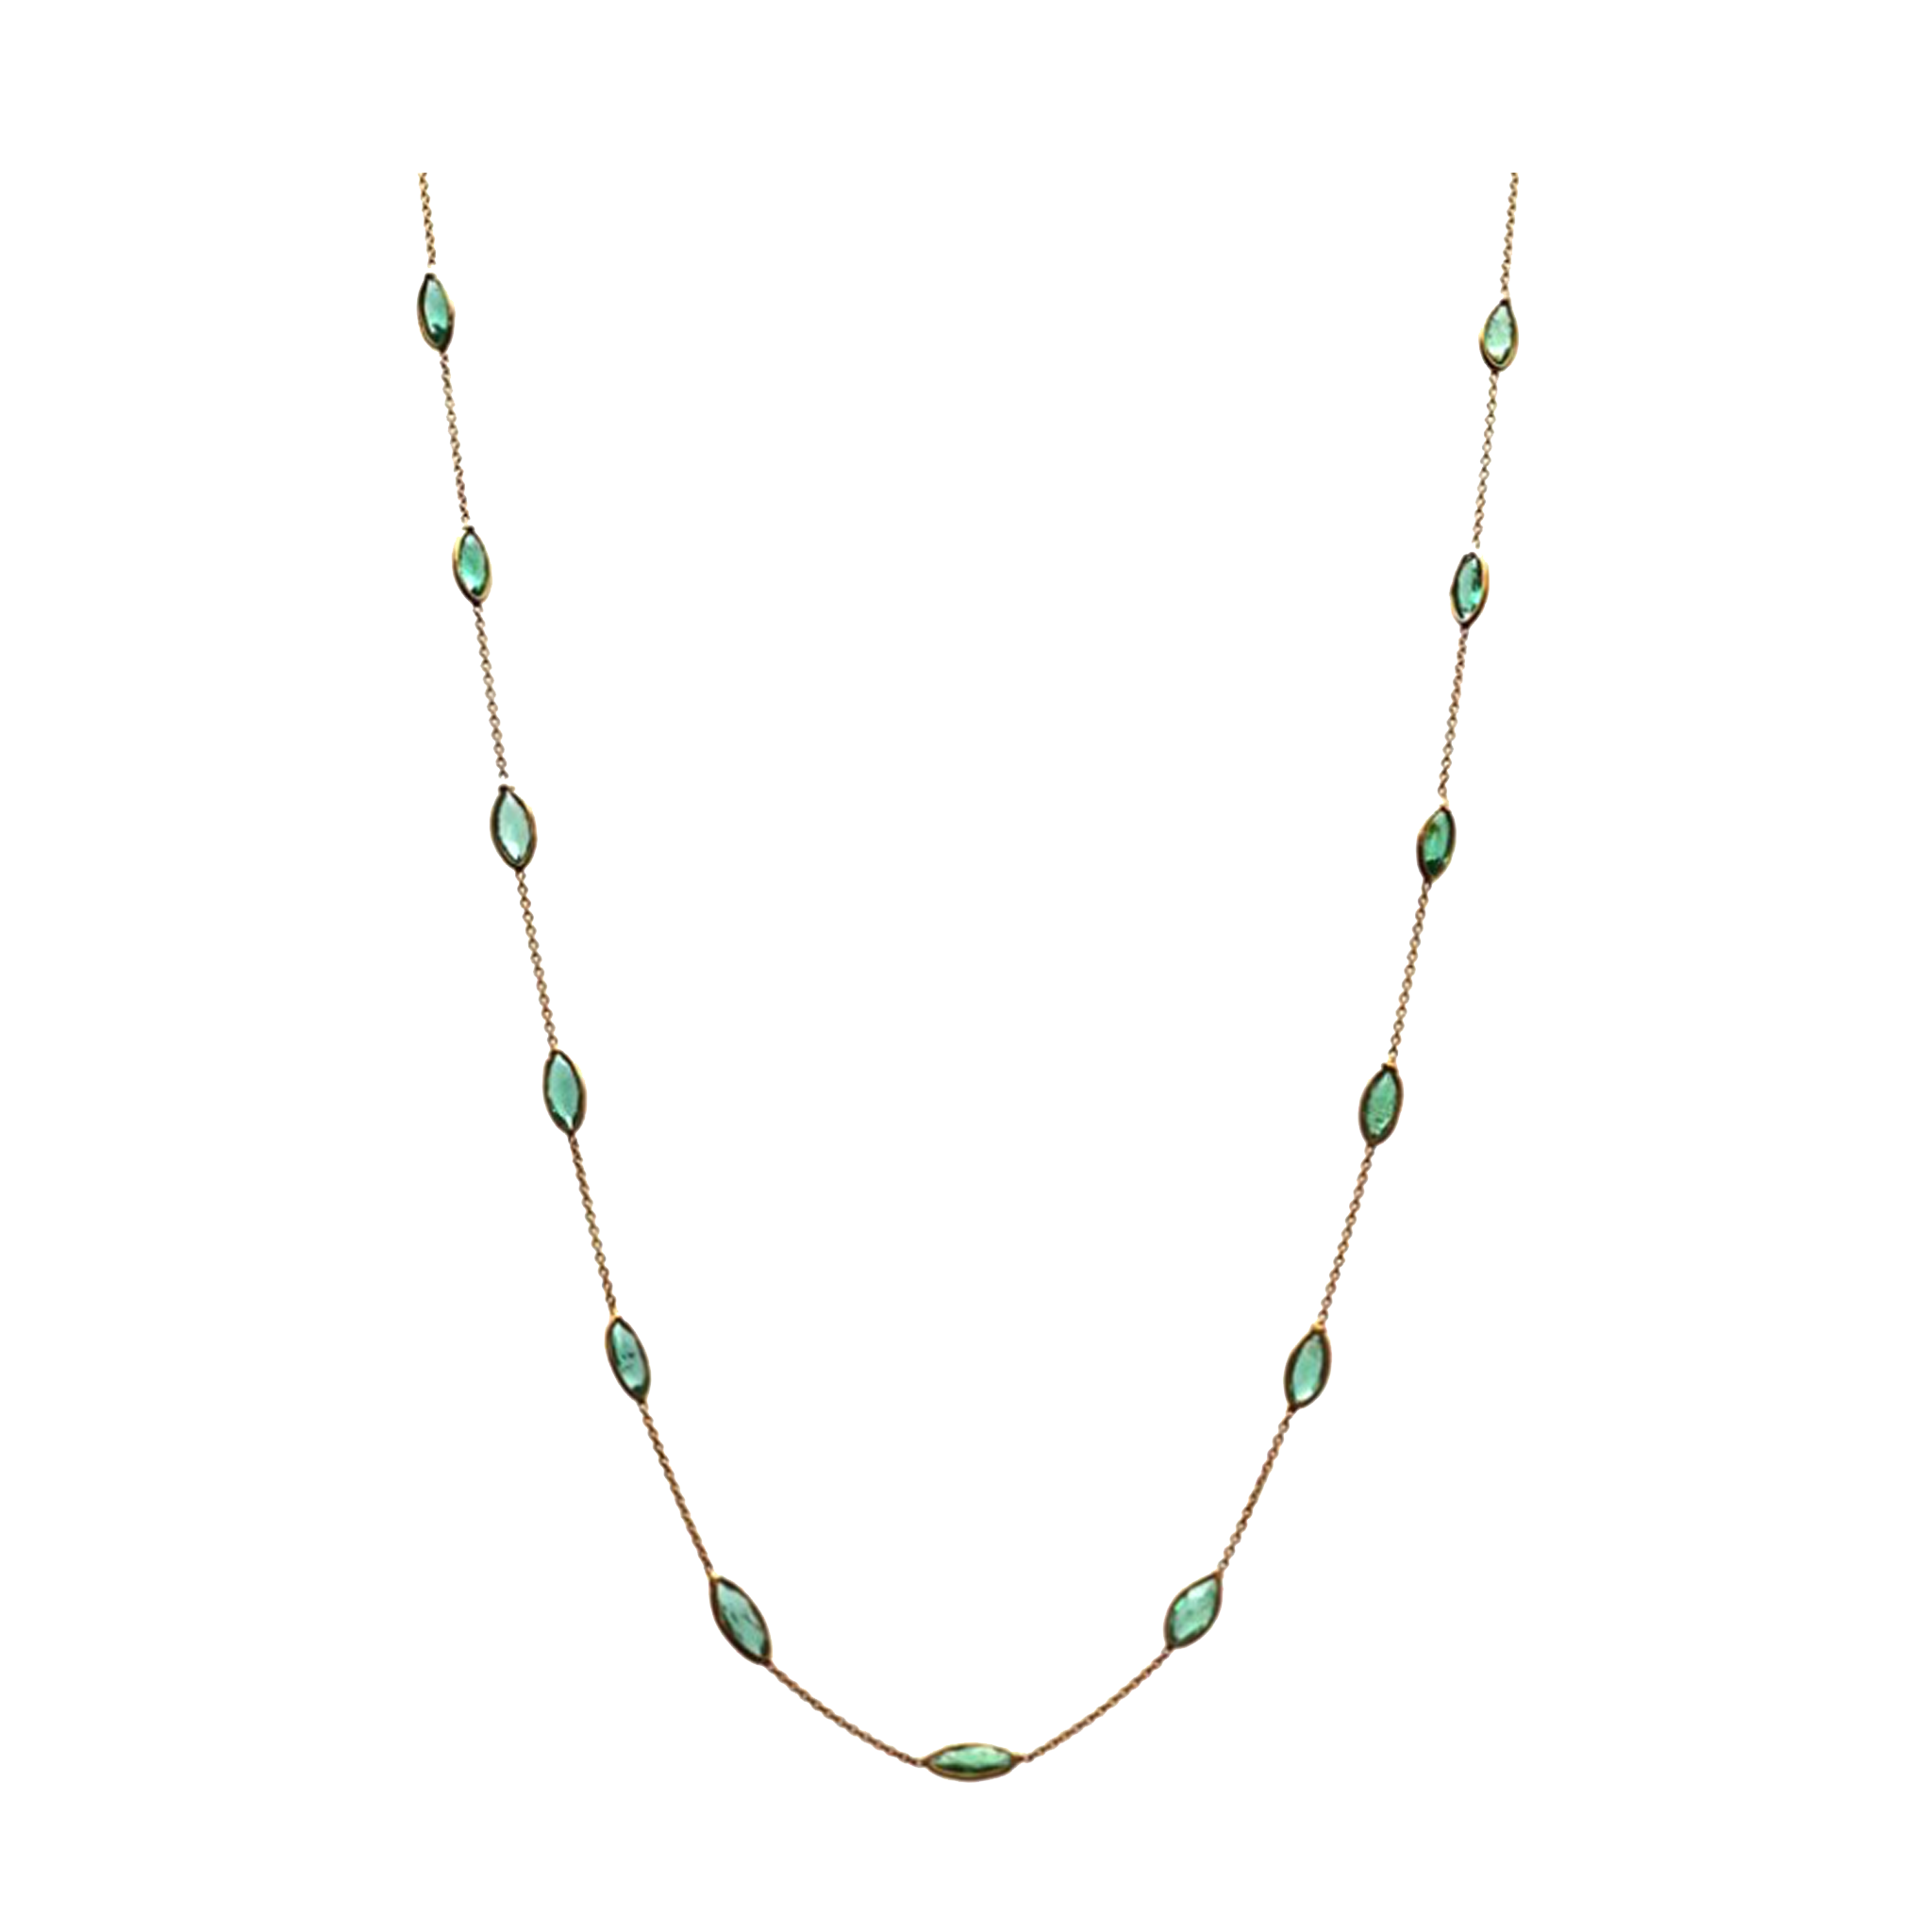 Emerald Marquise Necklace in 18k Yellow Gold